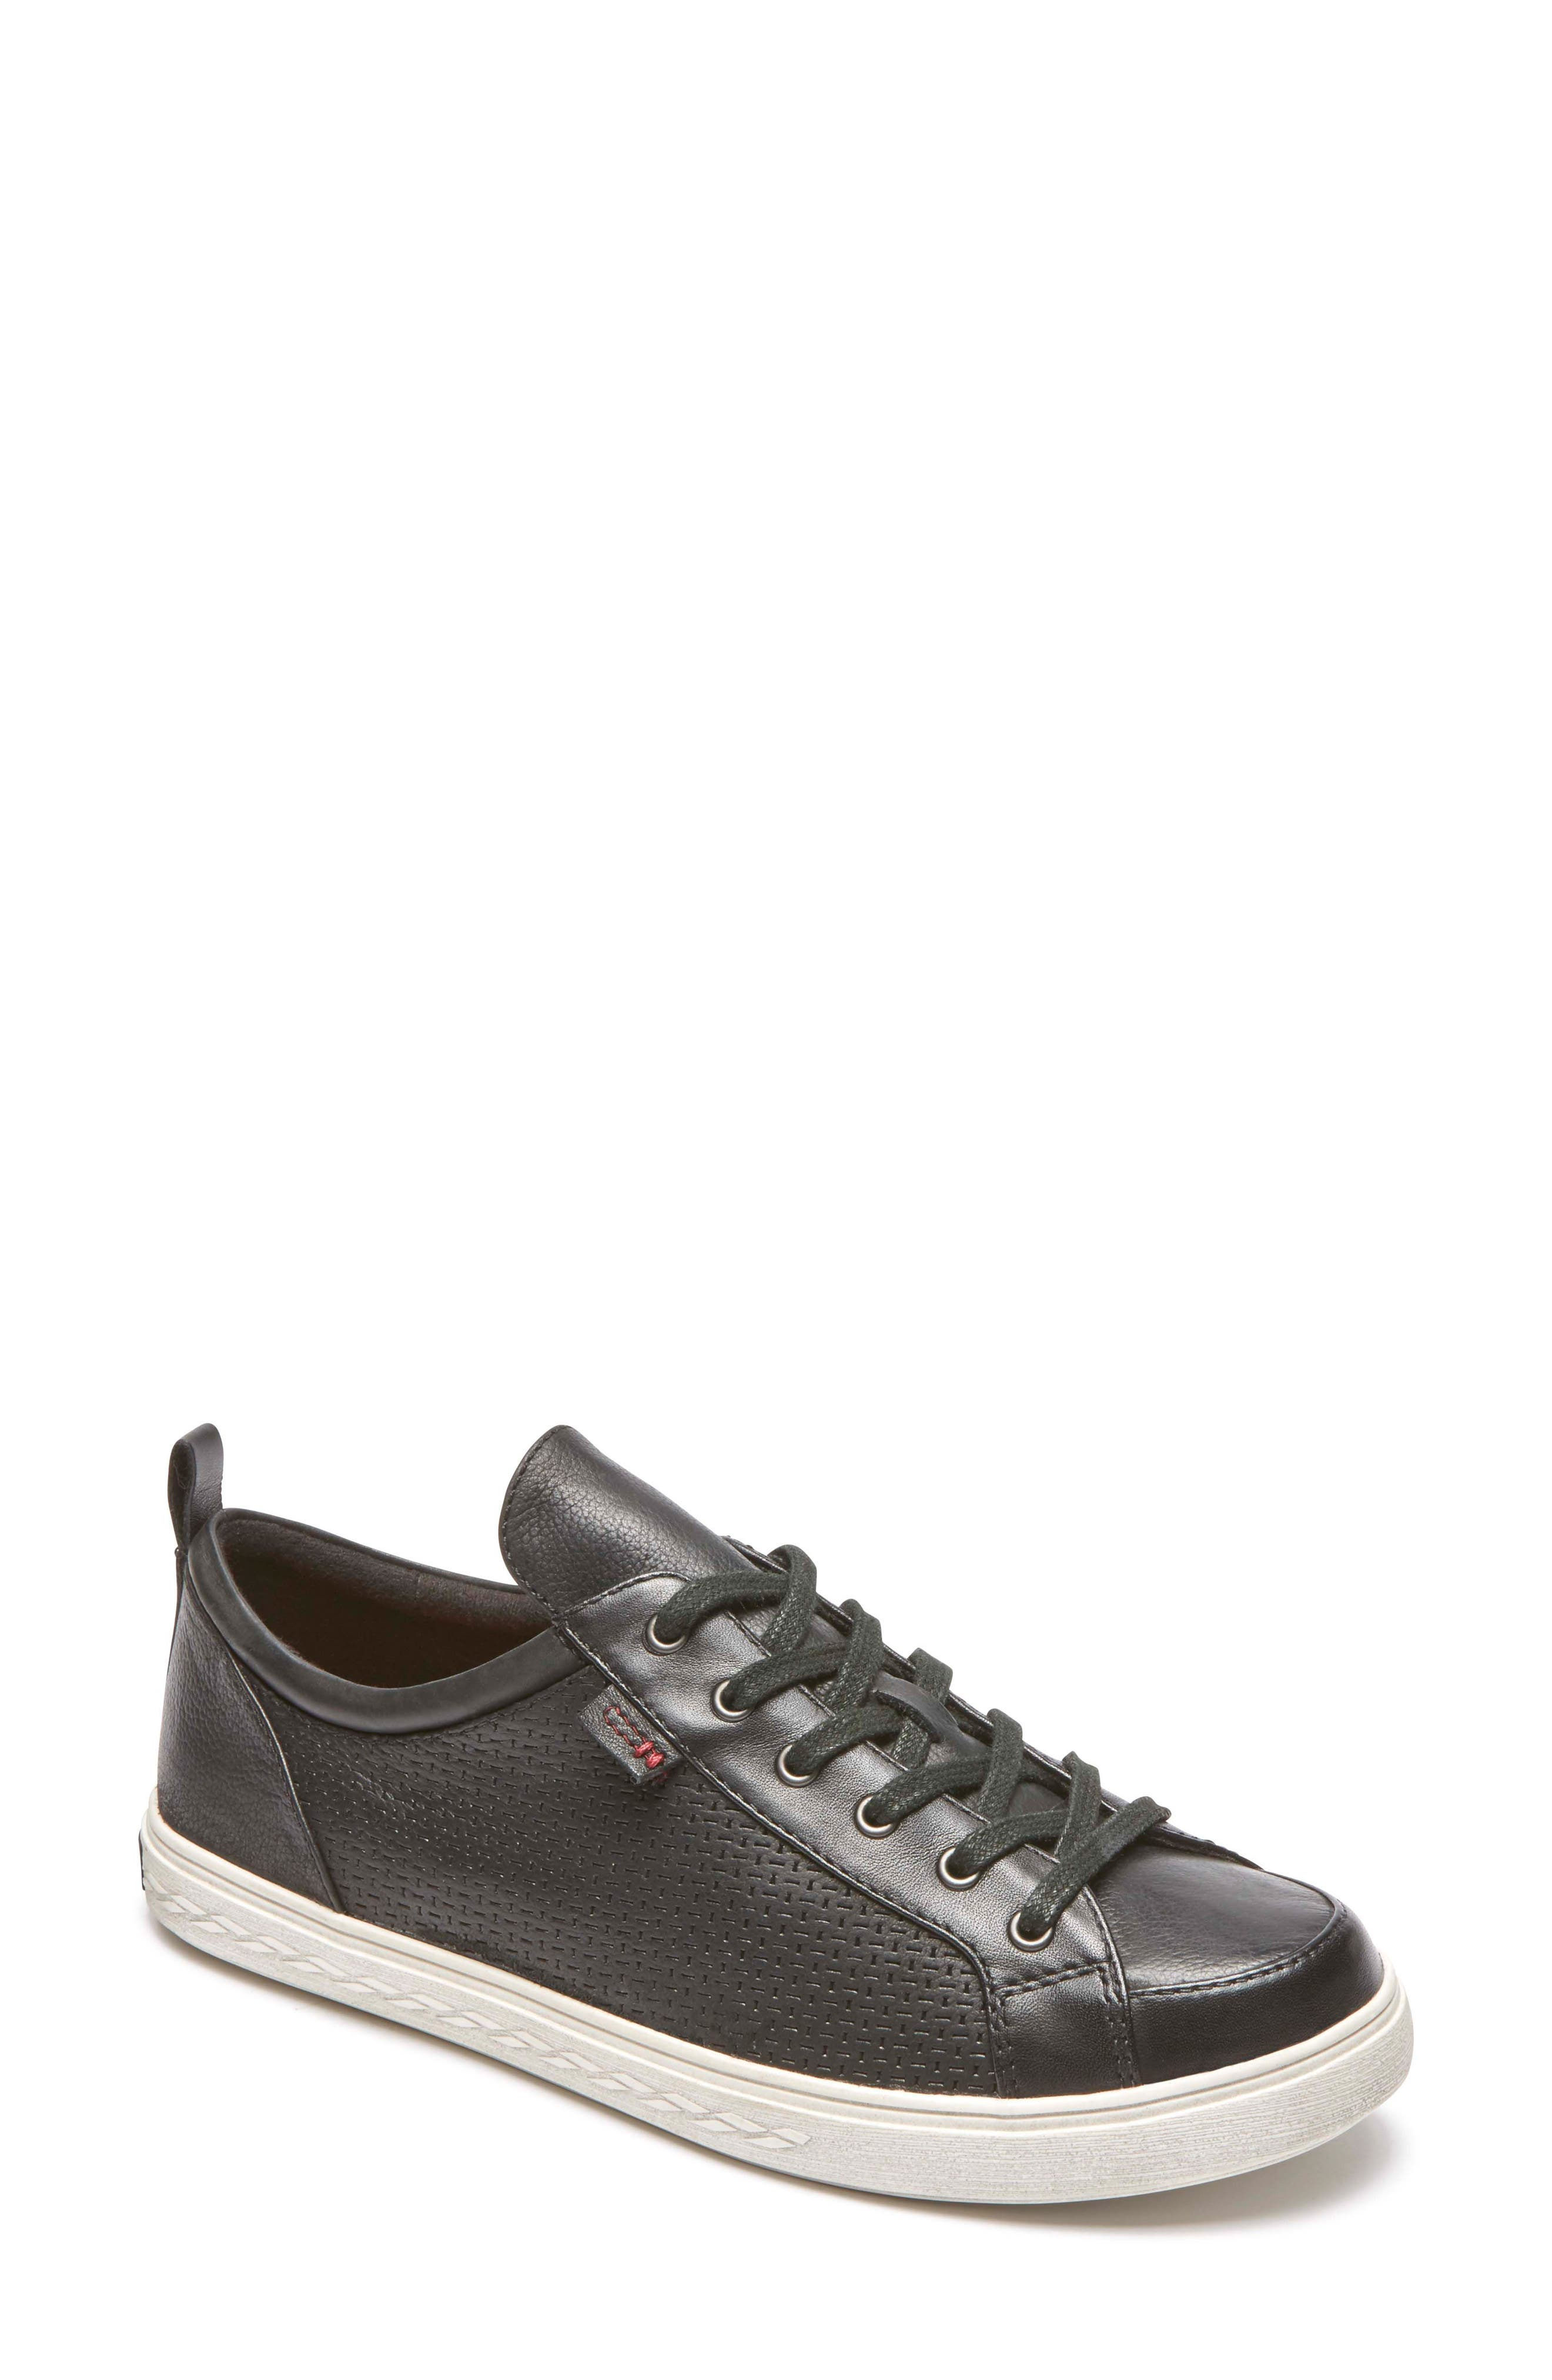 Willa Sneaker,                             Main thumbnail 1, color,                             BLACK LEATHER